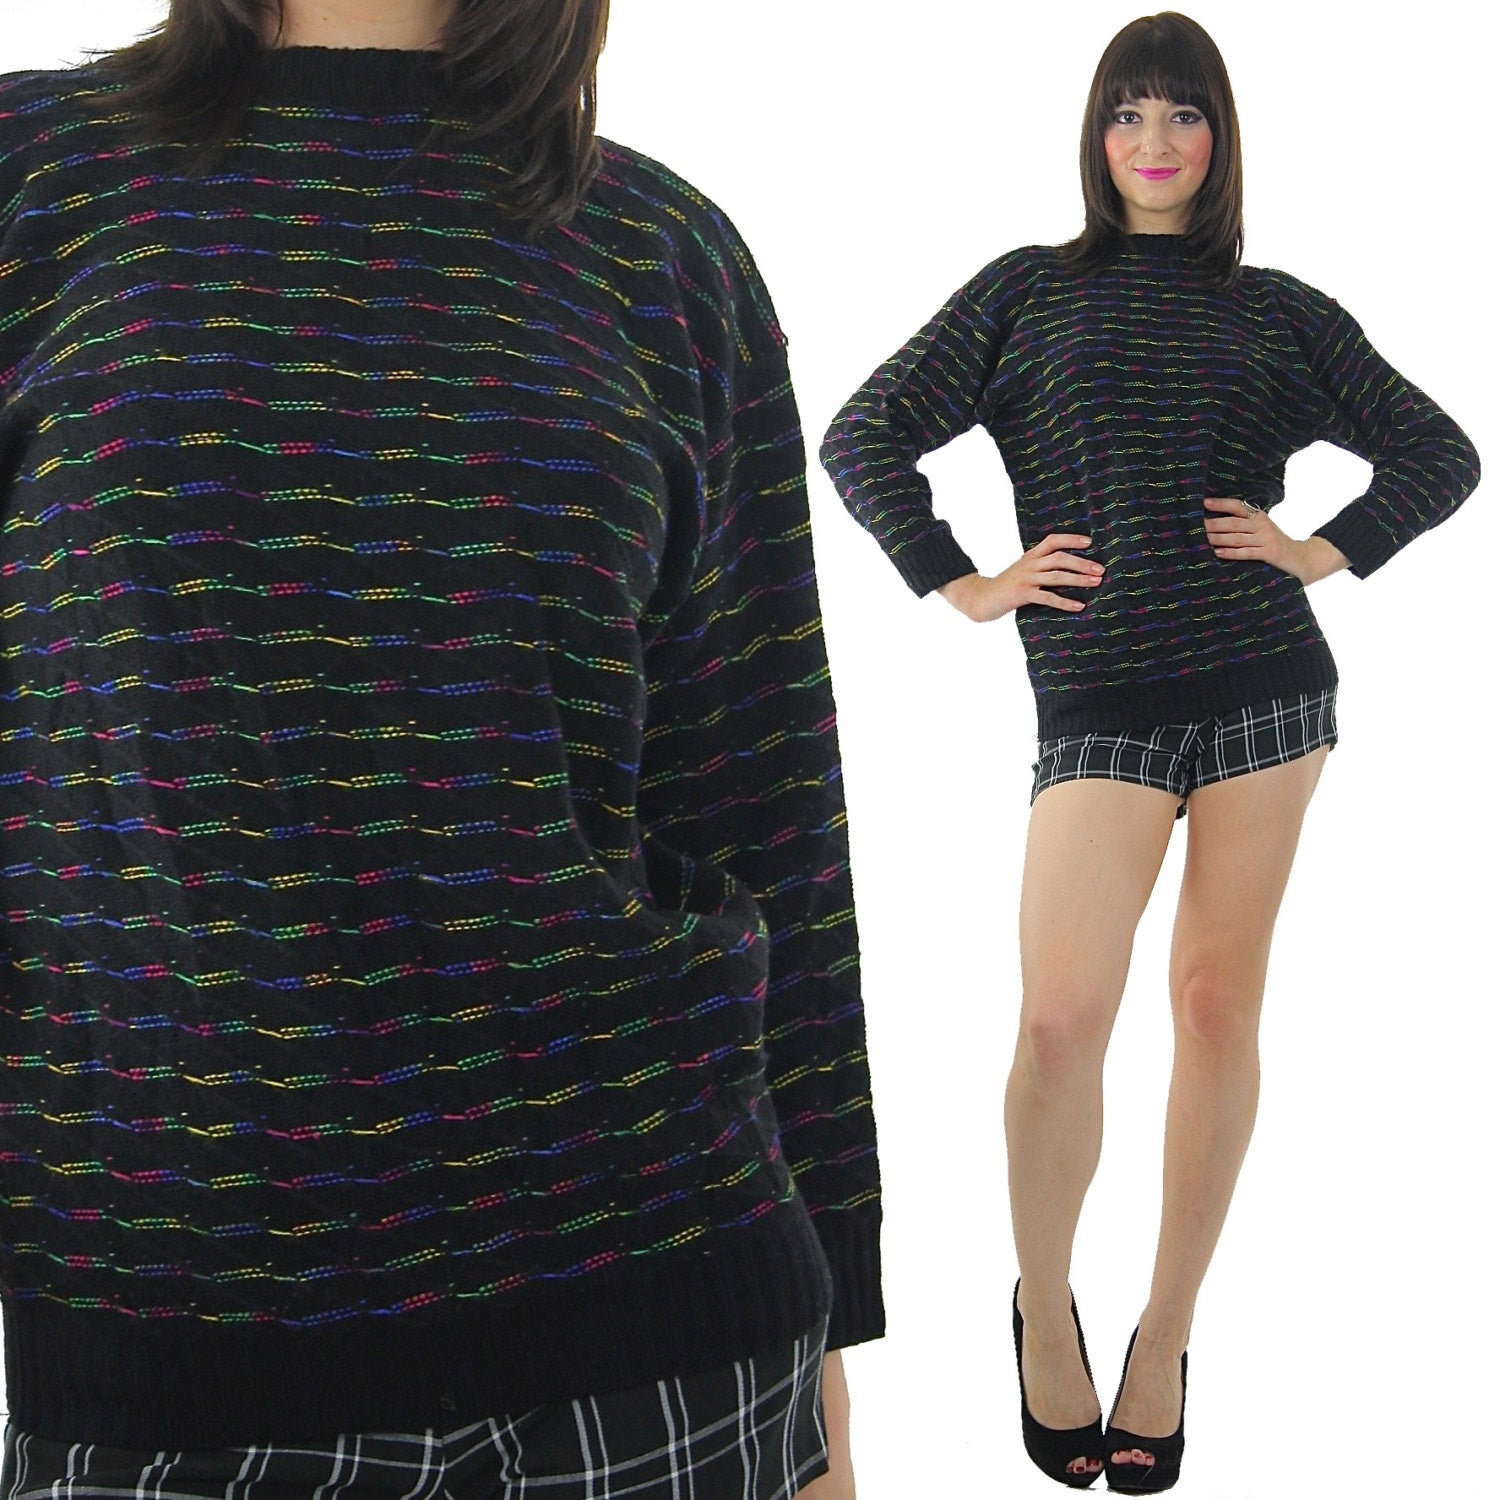 408fb9b2fe 80s striped black sweater pullover rainbow ribbed knit turtle neck top -  shabbybabe - 2